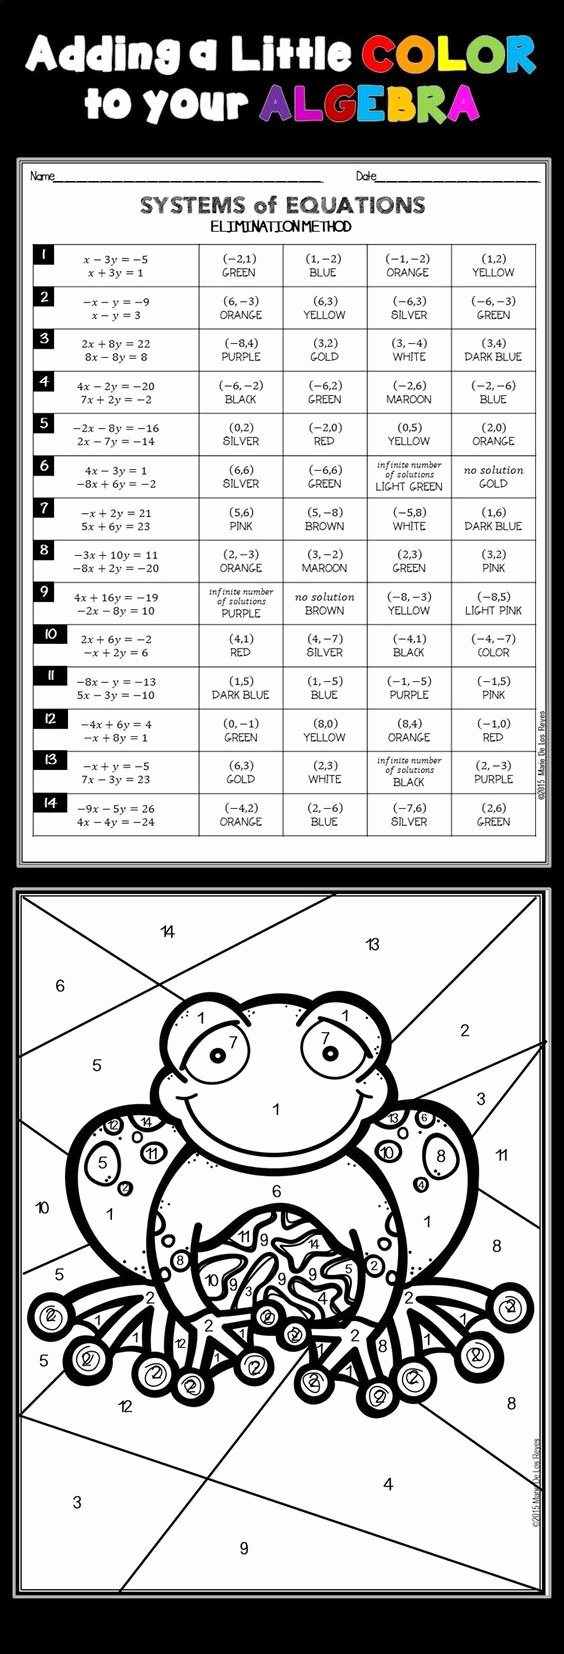 Systems Of Equations Elimination Worksheet Inspirational Activities Equation and Coloring On Pinterest